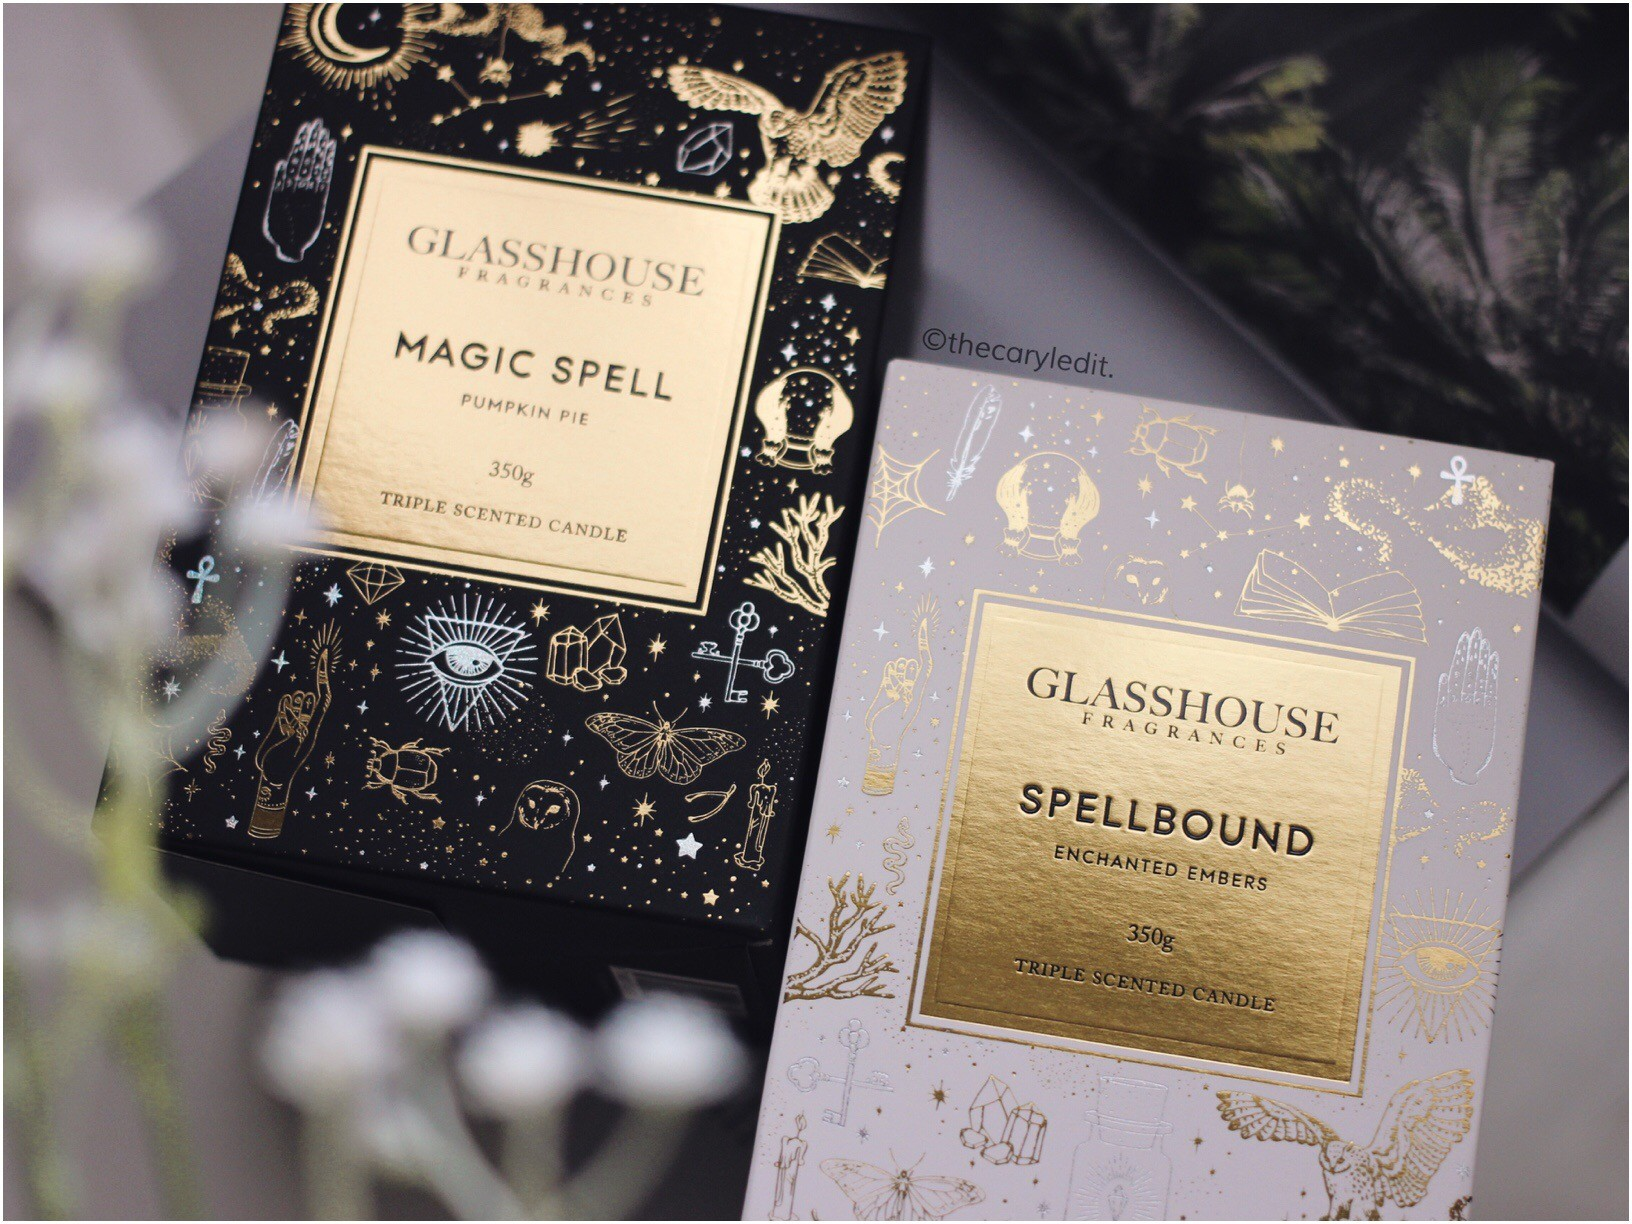 GLASSHOUSE FRAGRANCES: Dark Arts Duo Triple Scented Candles